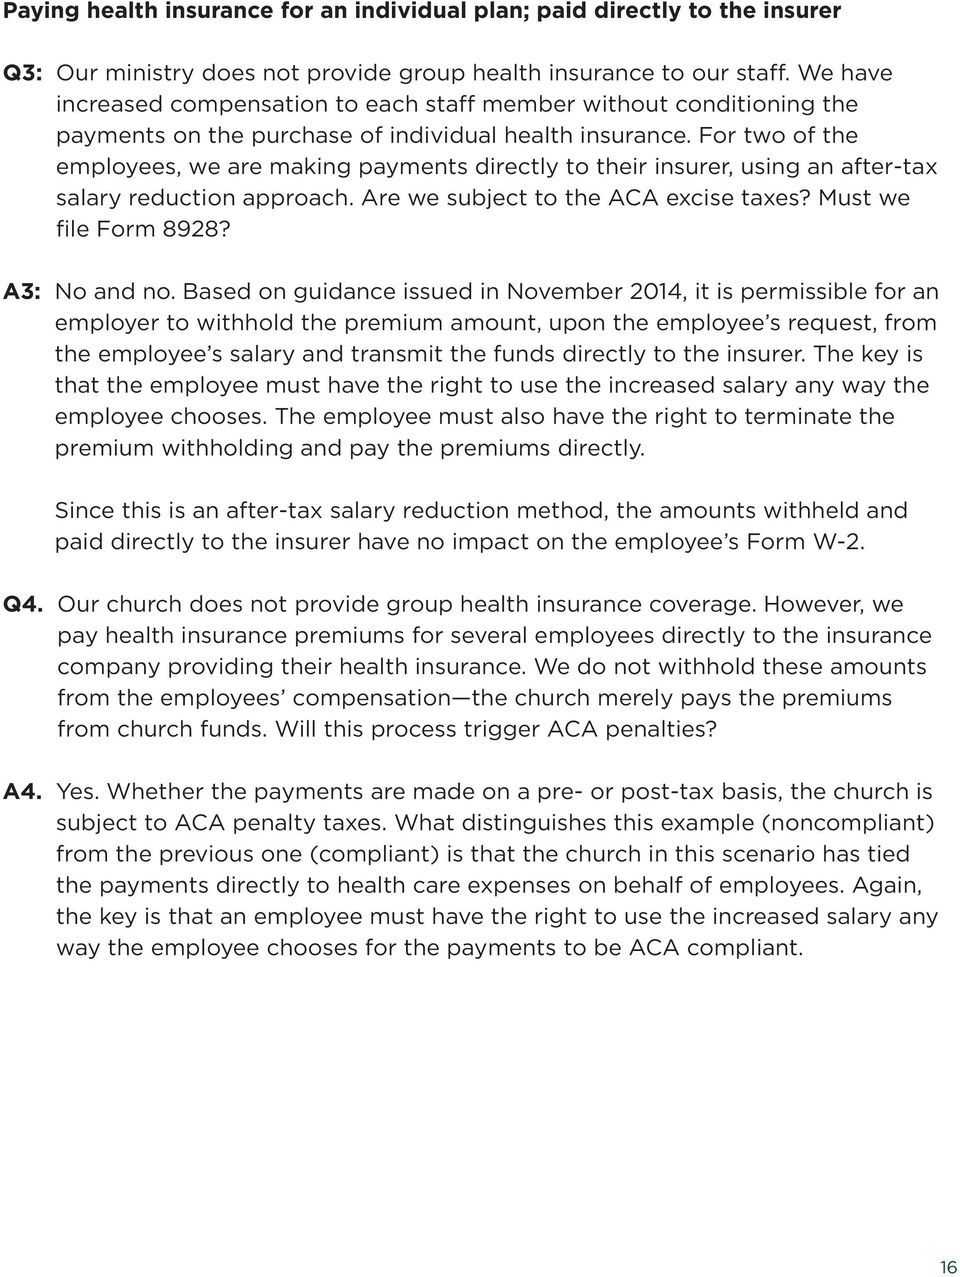 For two of the employees, we are making payments directly to their insurer, using an after-tax salary reduction approach. Are we subject to the ACA excise taxes? Must we file Form 8928? A3: No and no.